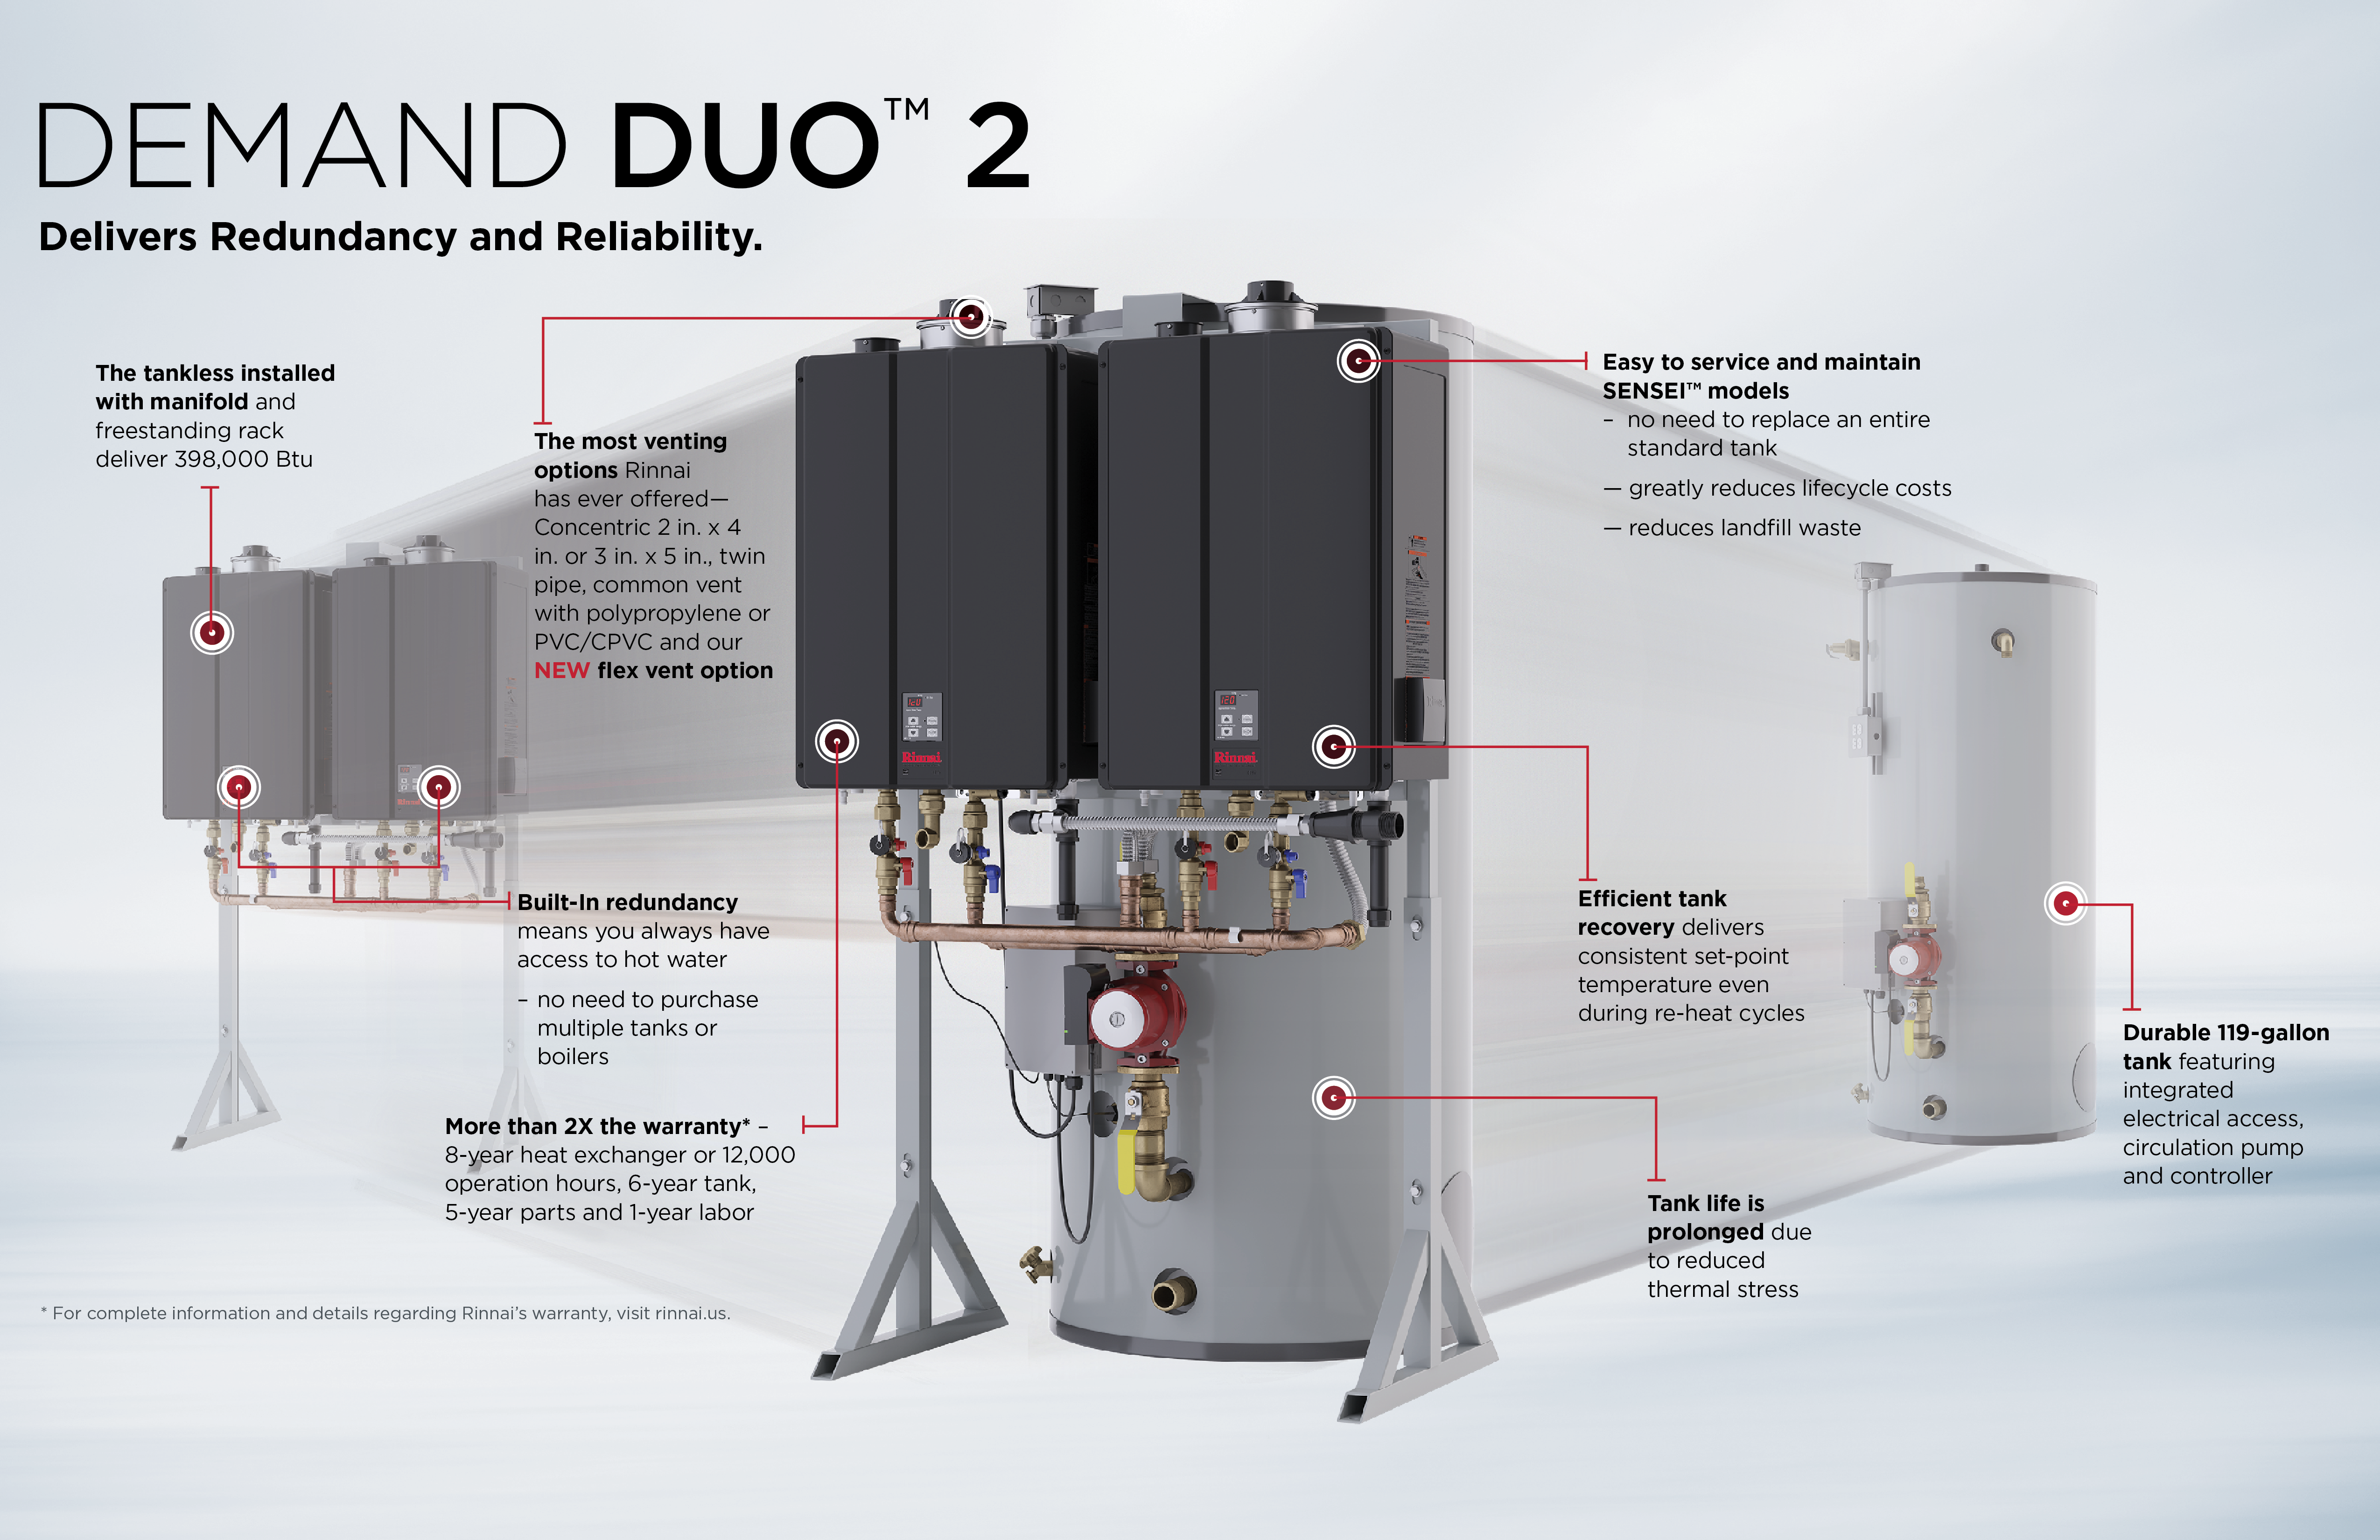 Demand Duo 2 Brochure